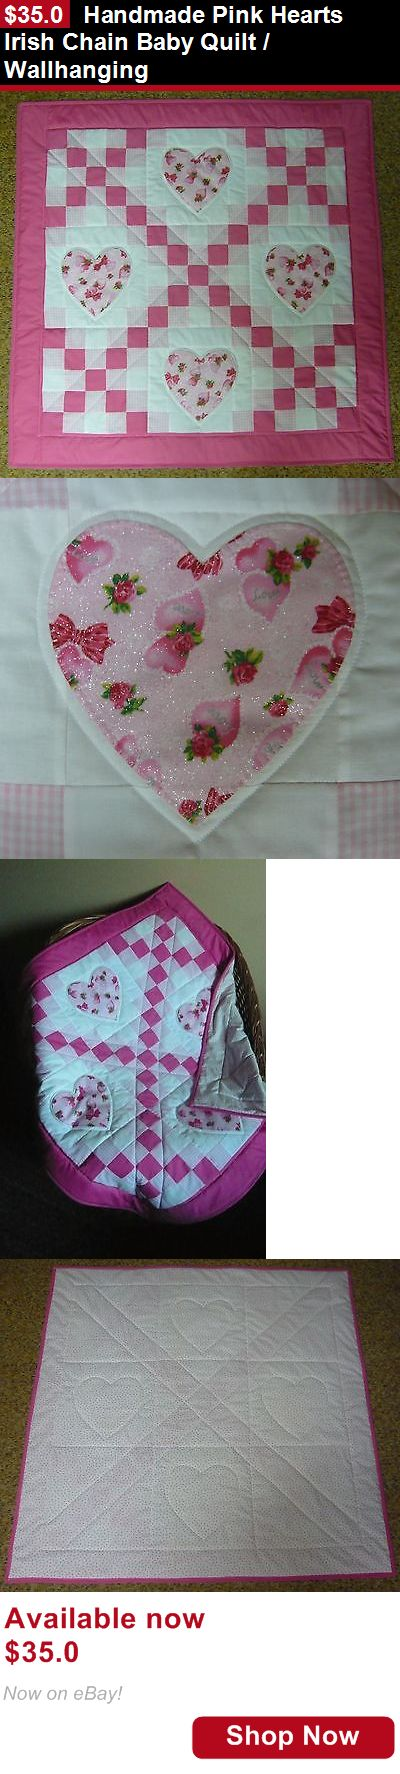 Quilts And Coverlets: Handmade Pink Hearts Irish Chain Baby Quilt / Wallhanging BUY IT NOW ONLY: $35.0